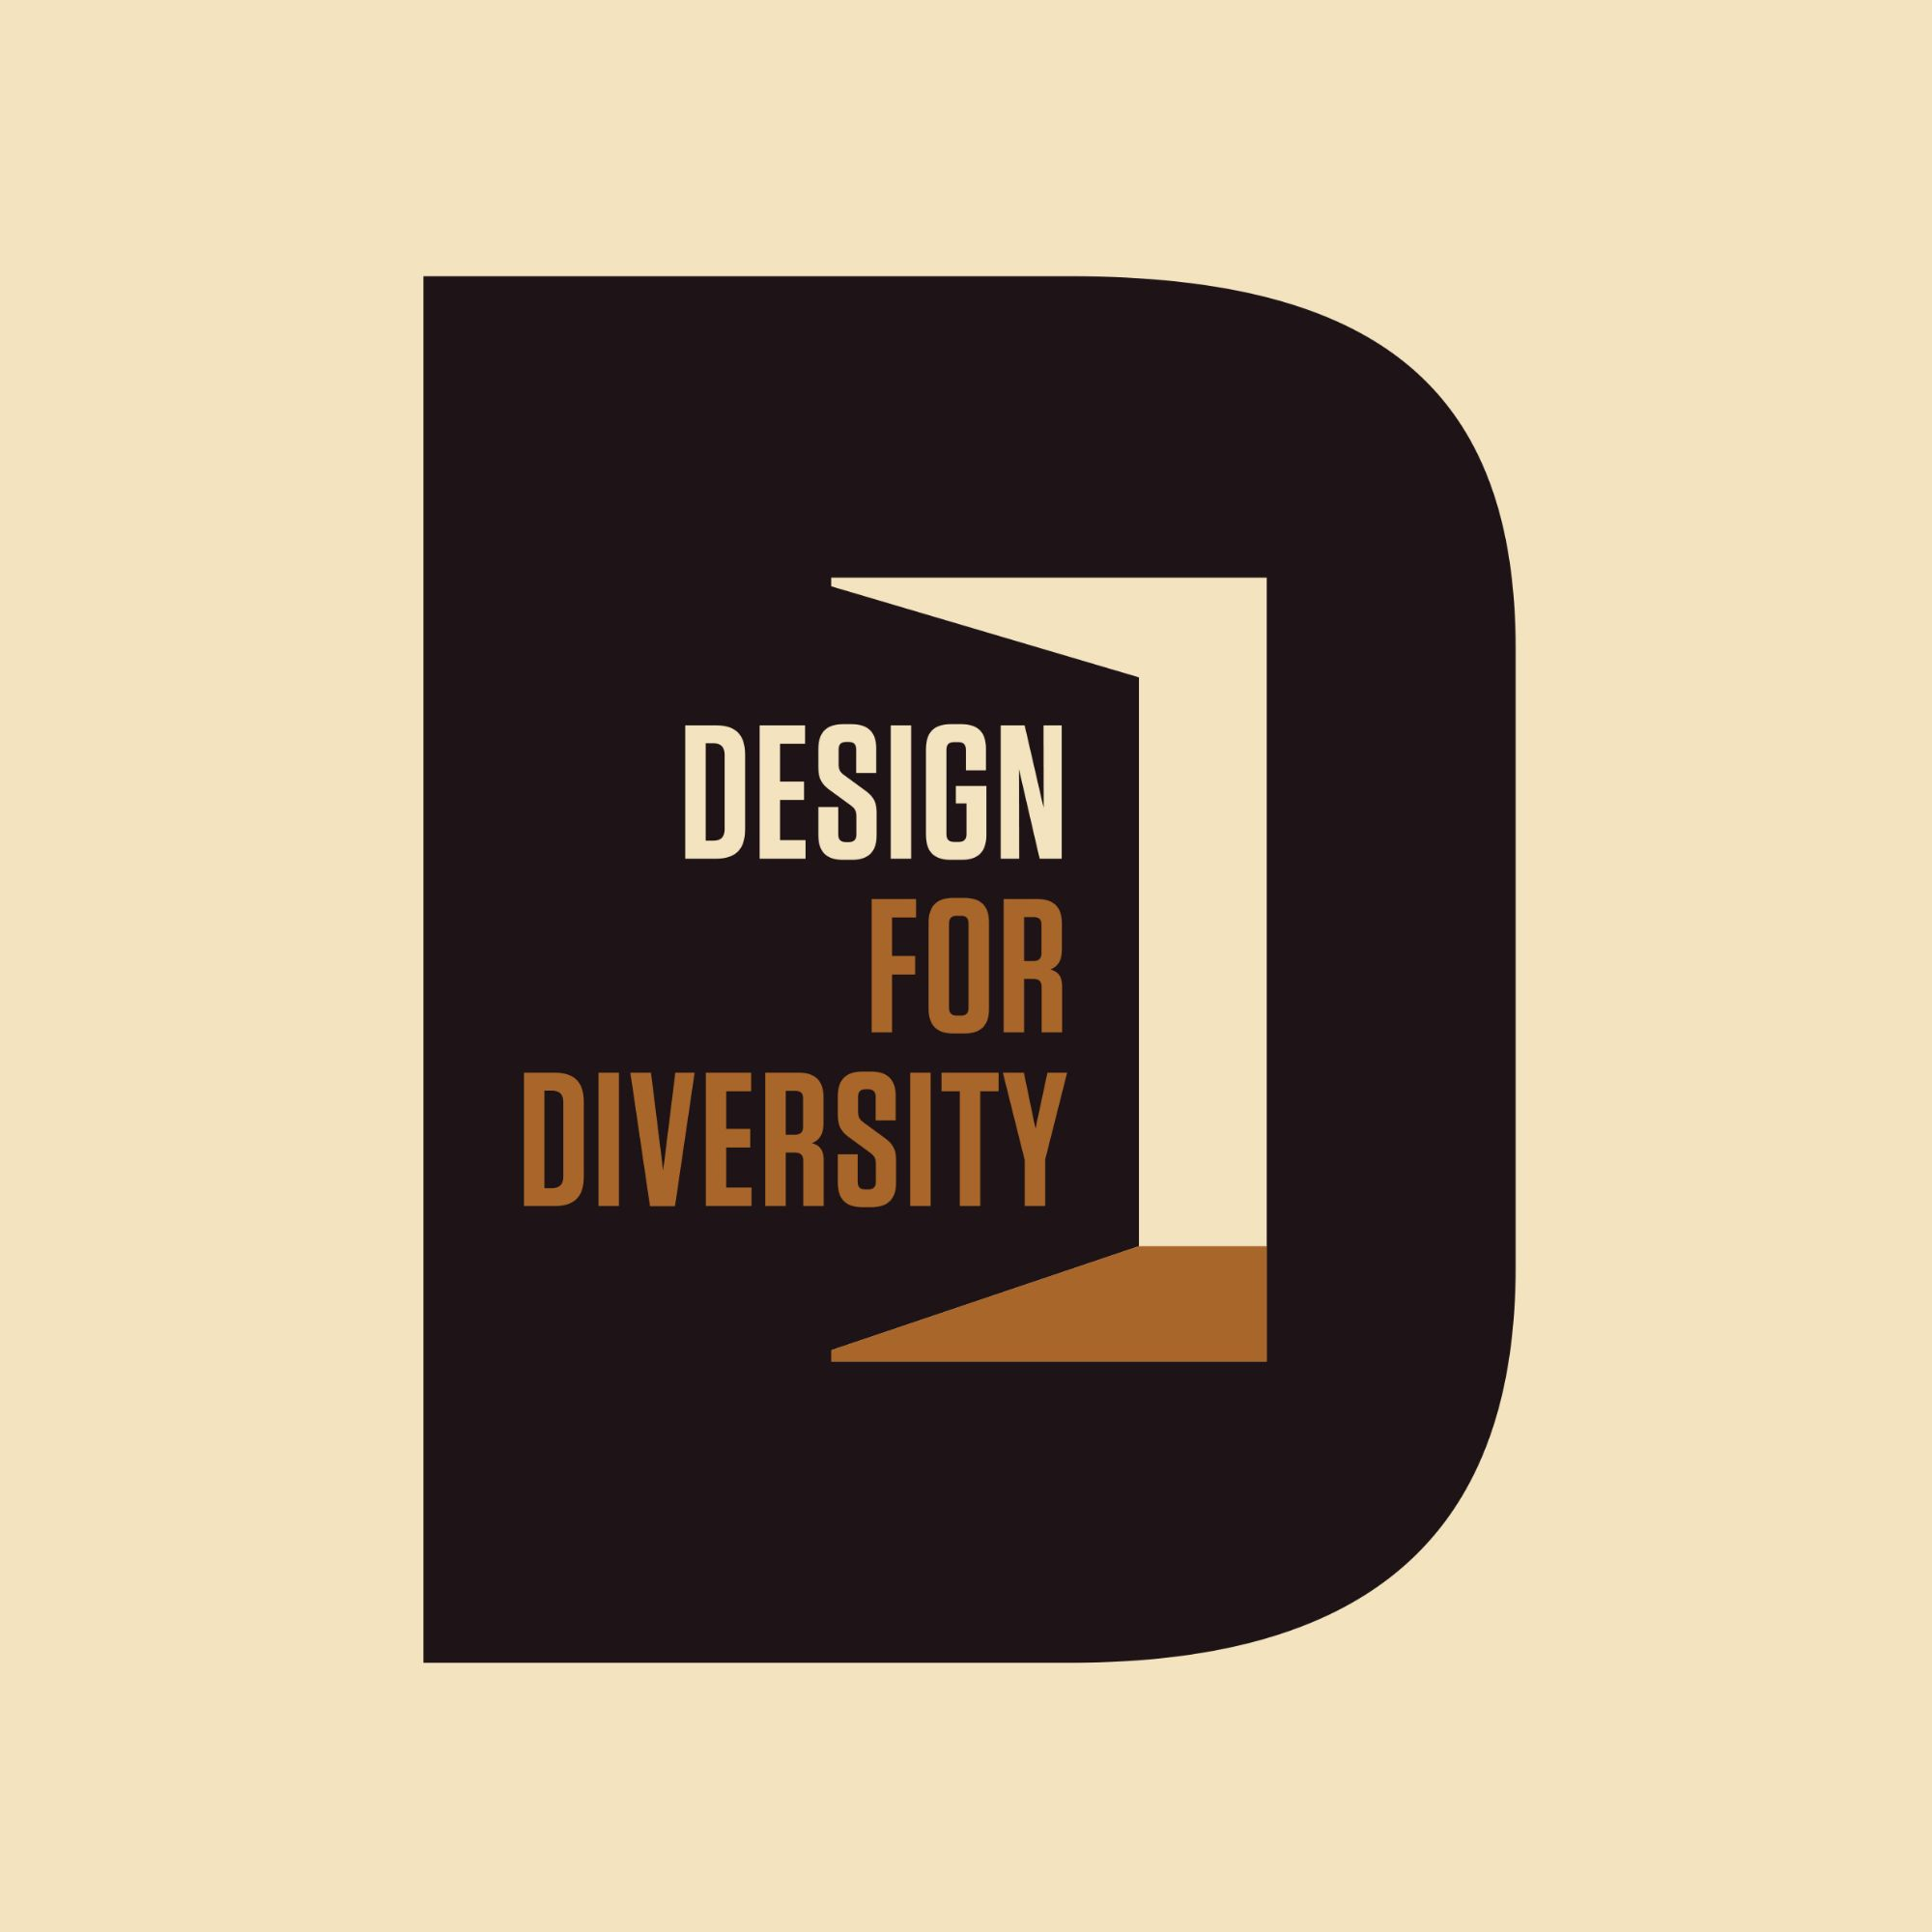 What is design for diversity